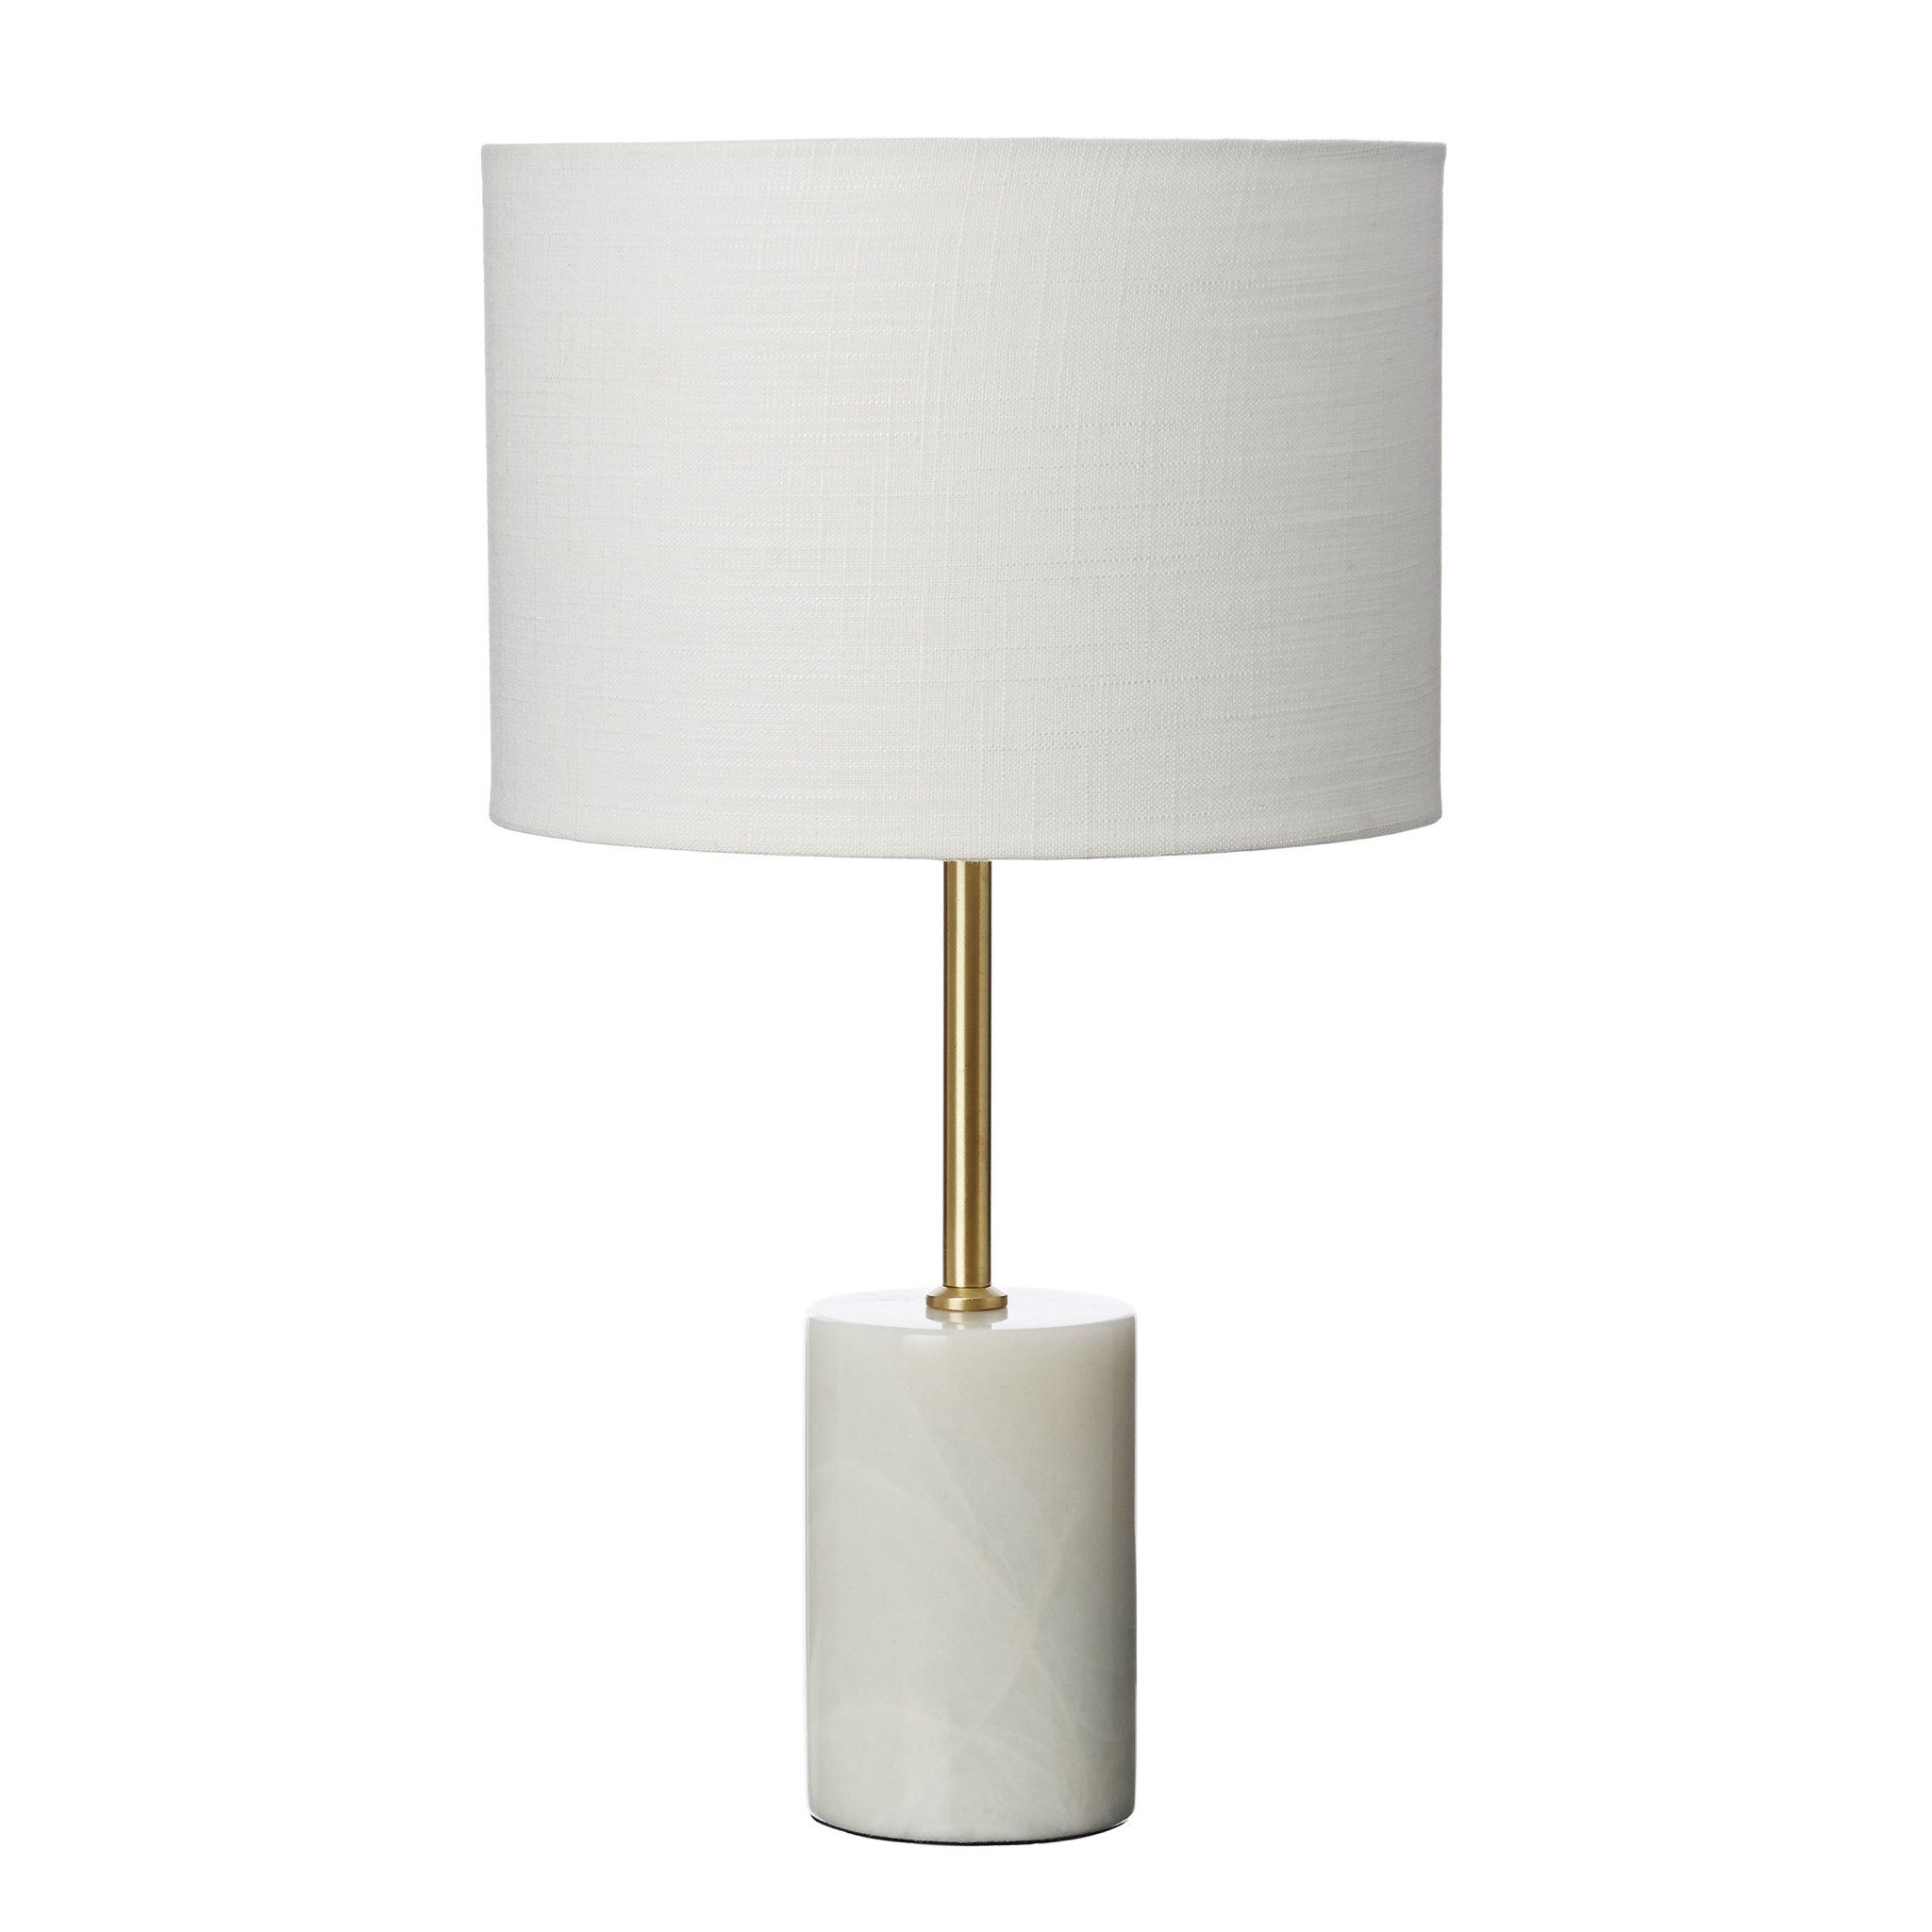 Slim Bedside Lamp Bedside Lamp Lamp Bedside Table Lamps Modern